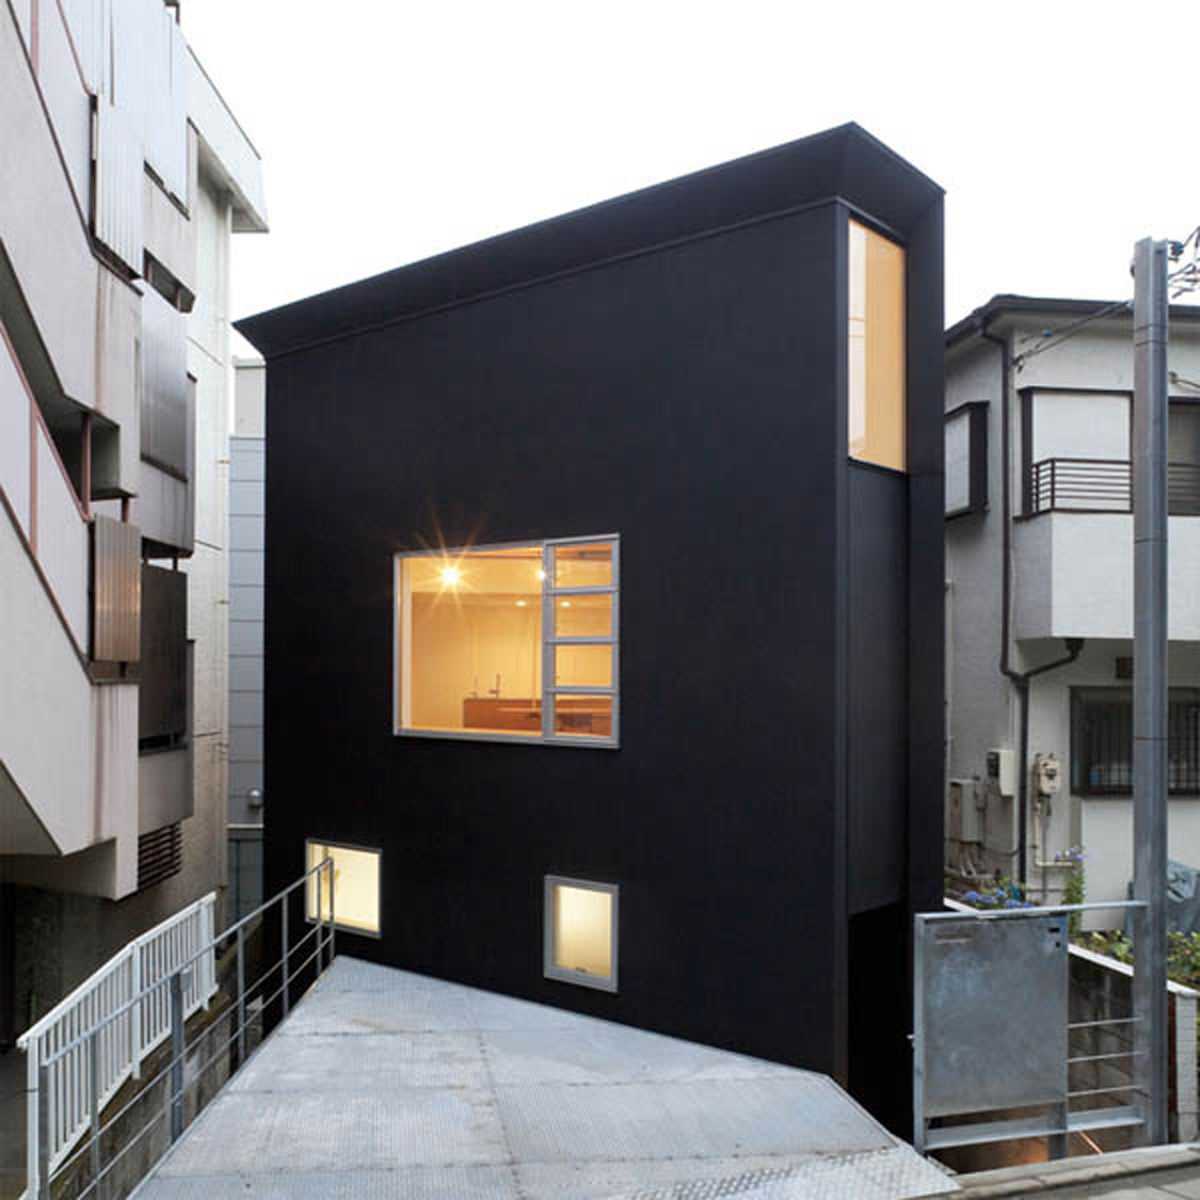 Minimalist japanese house layouts for Japanese minimalist interior design